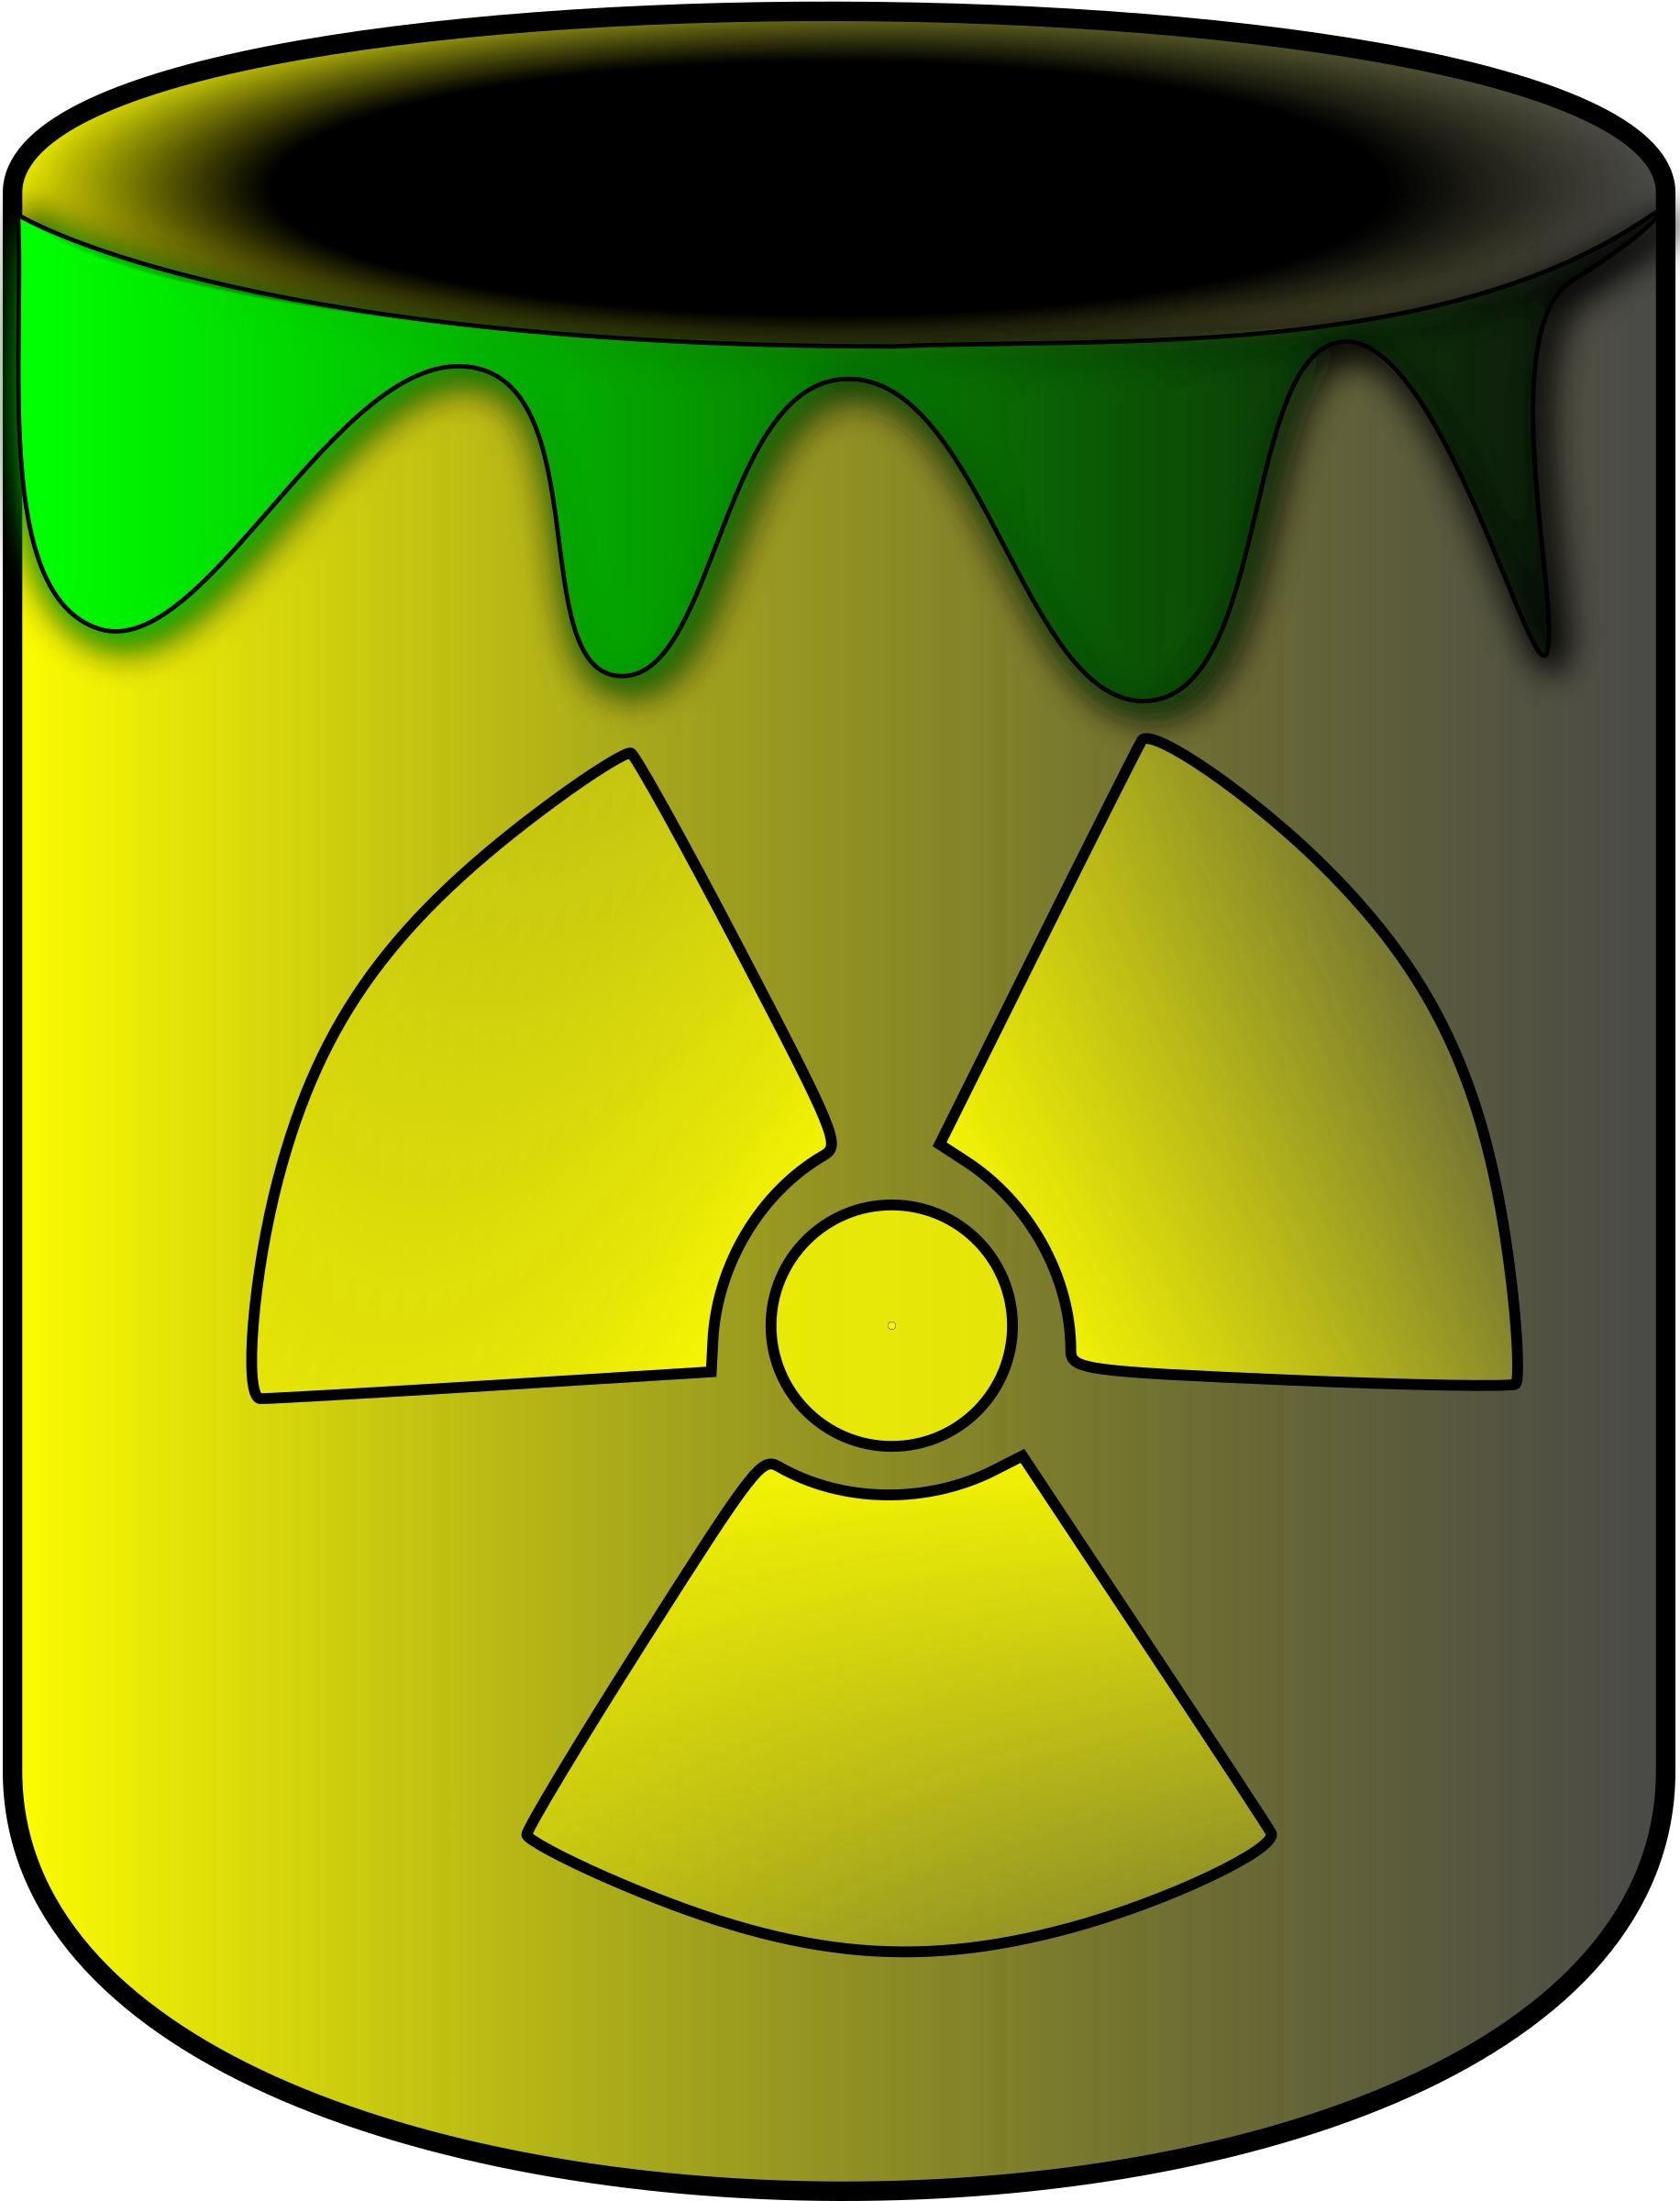 Icons png free and. Barrel clipart toxic